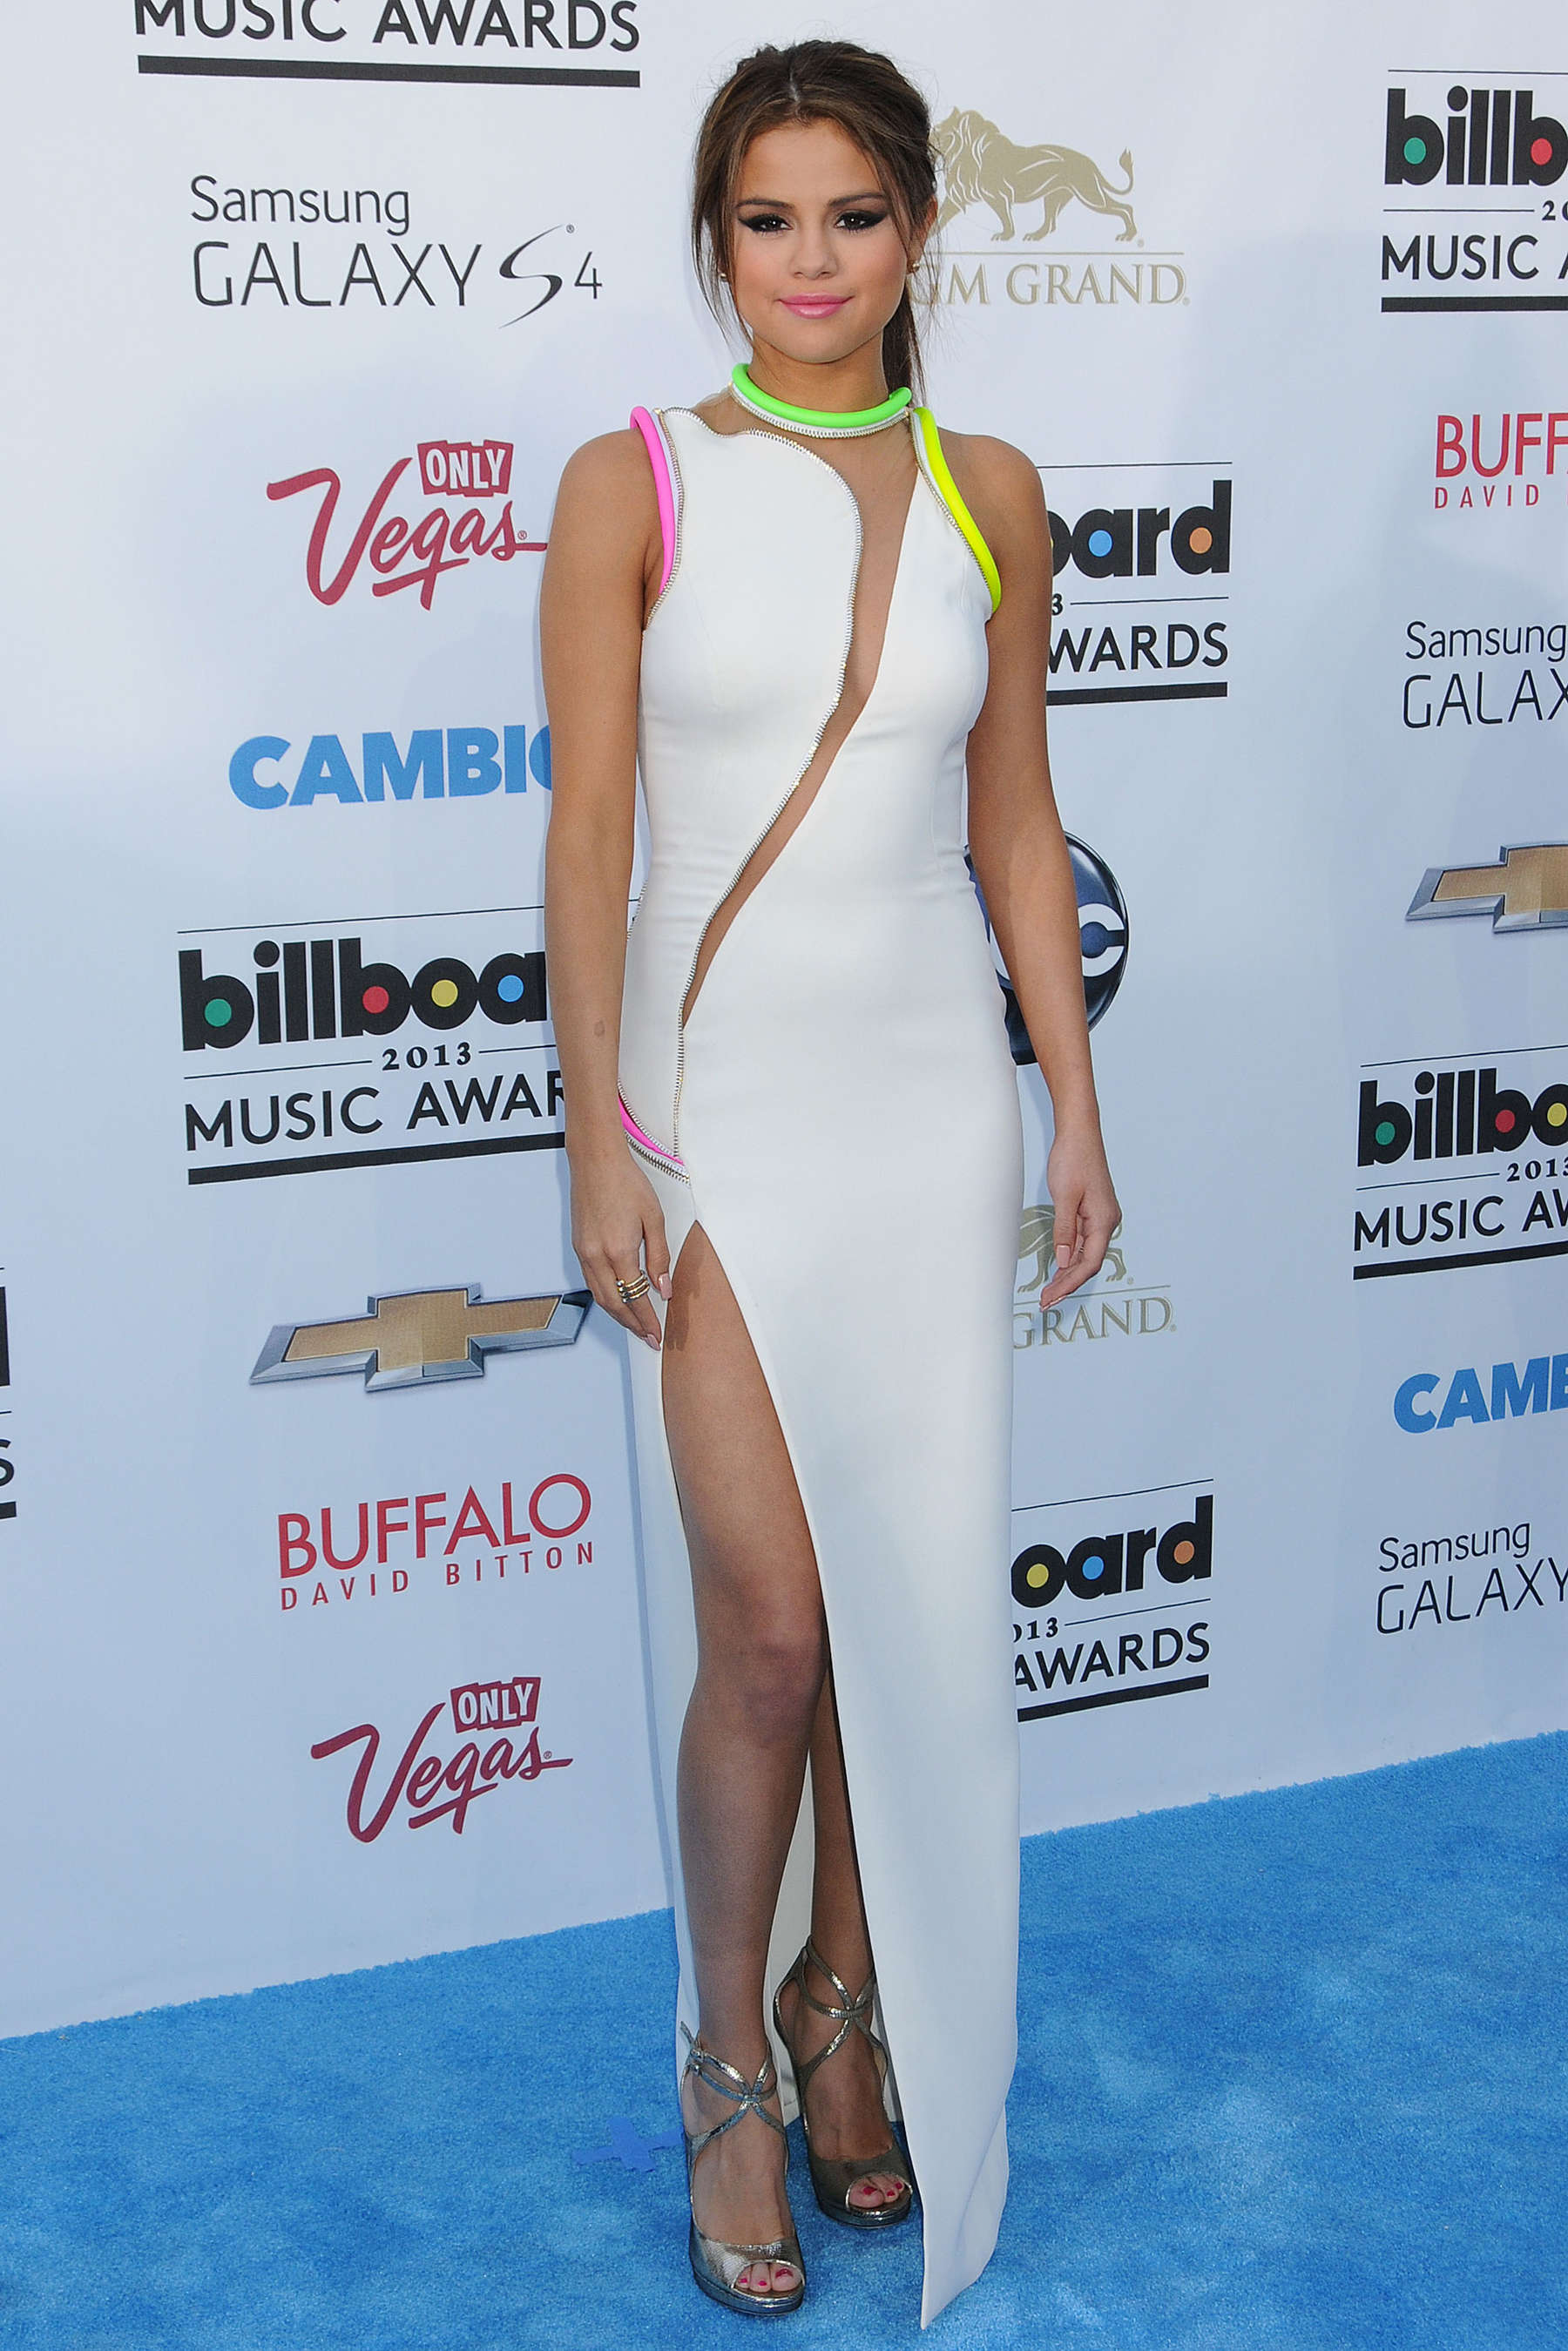 selena gomez in versace couture dress at the 2013